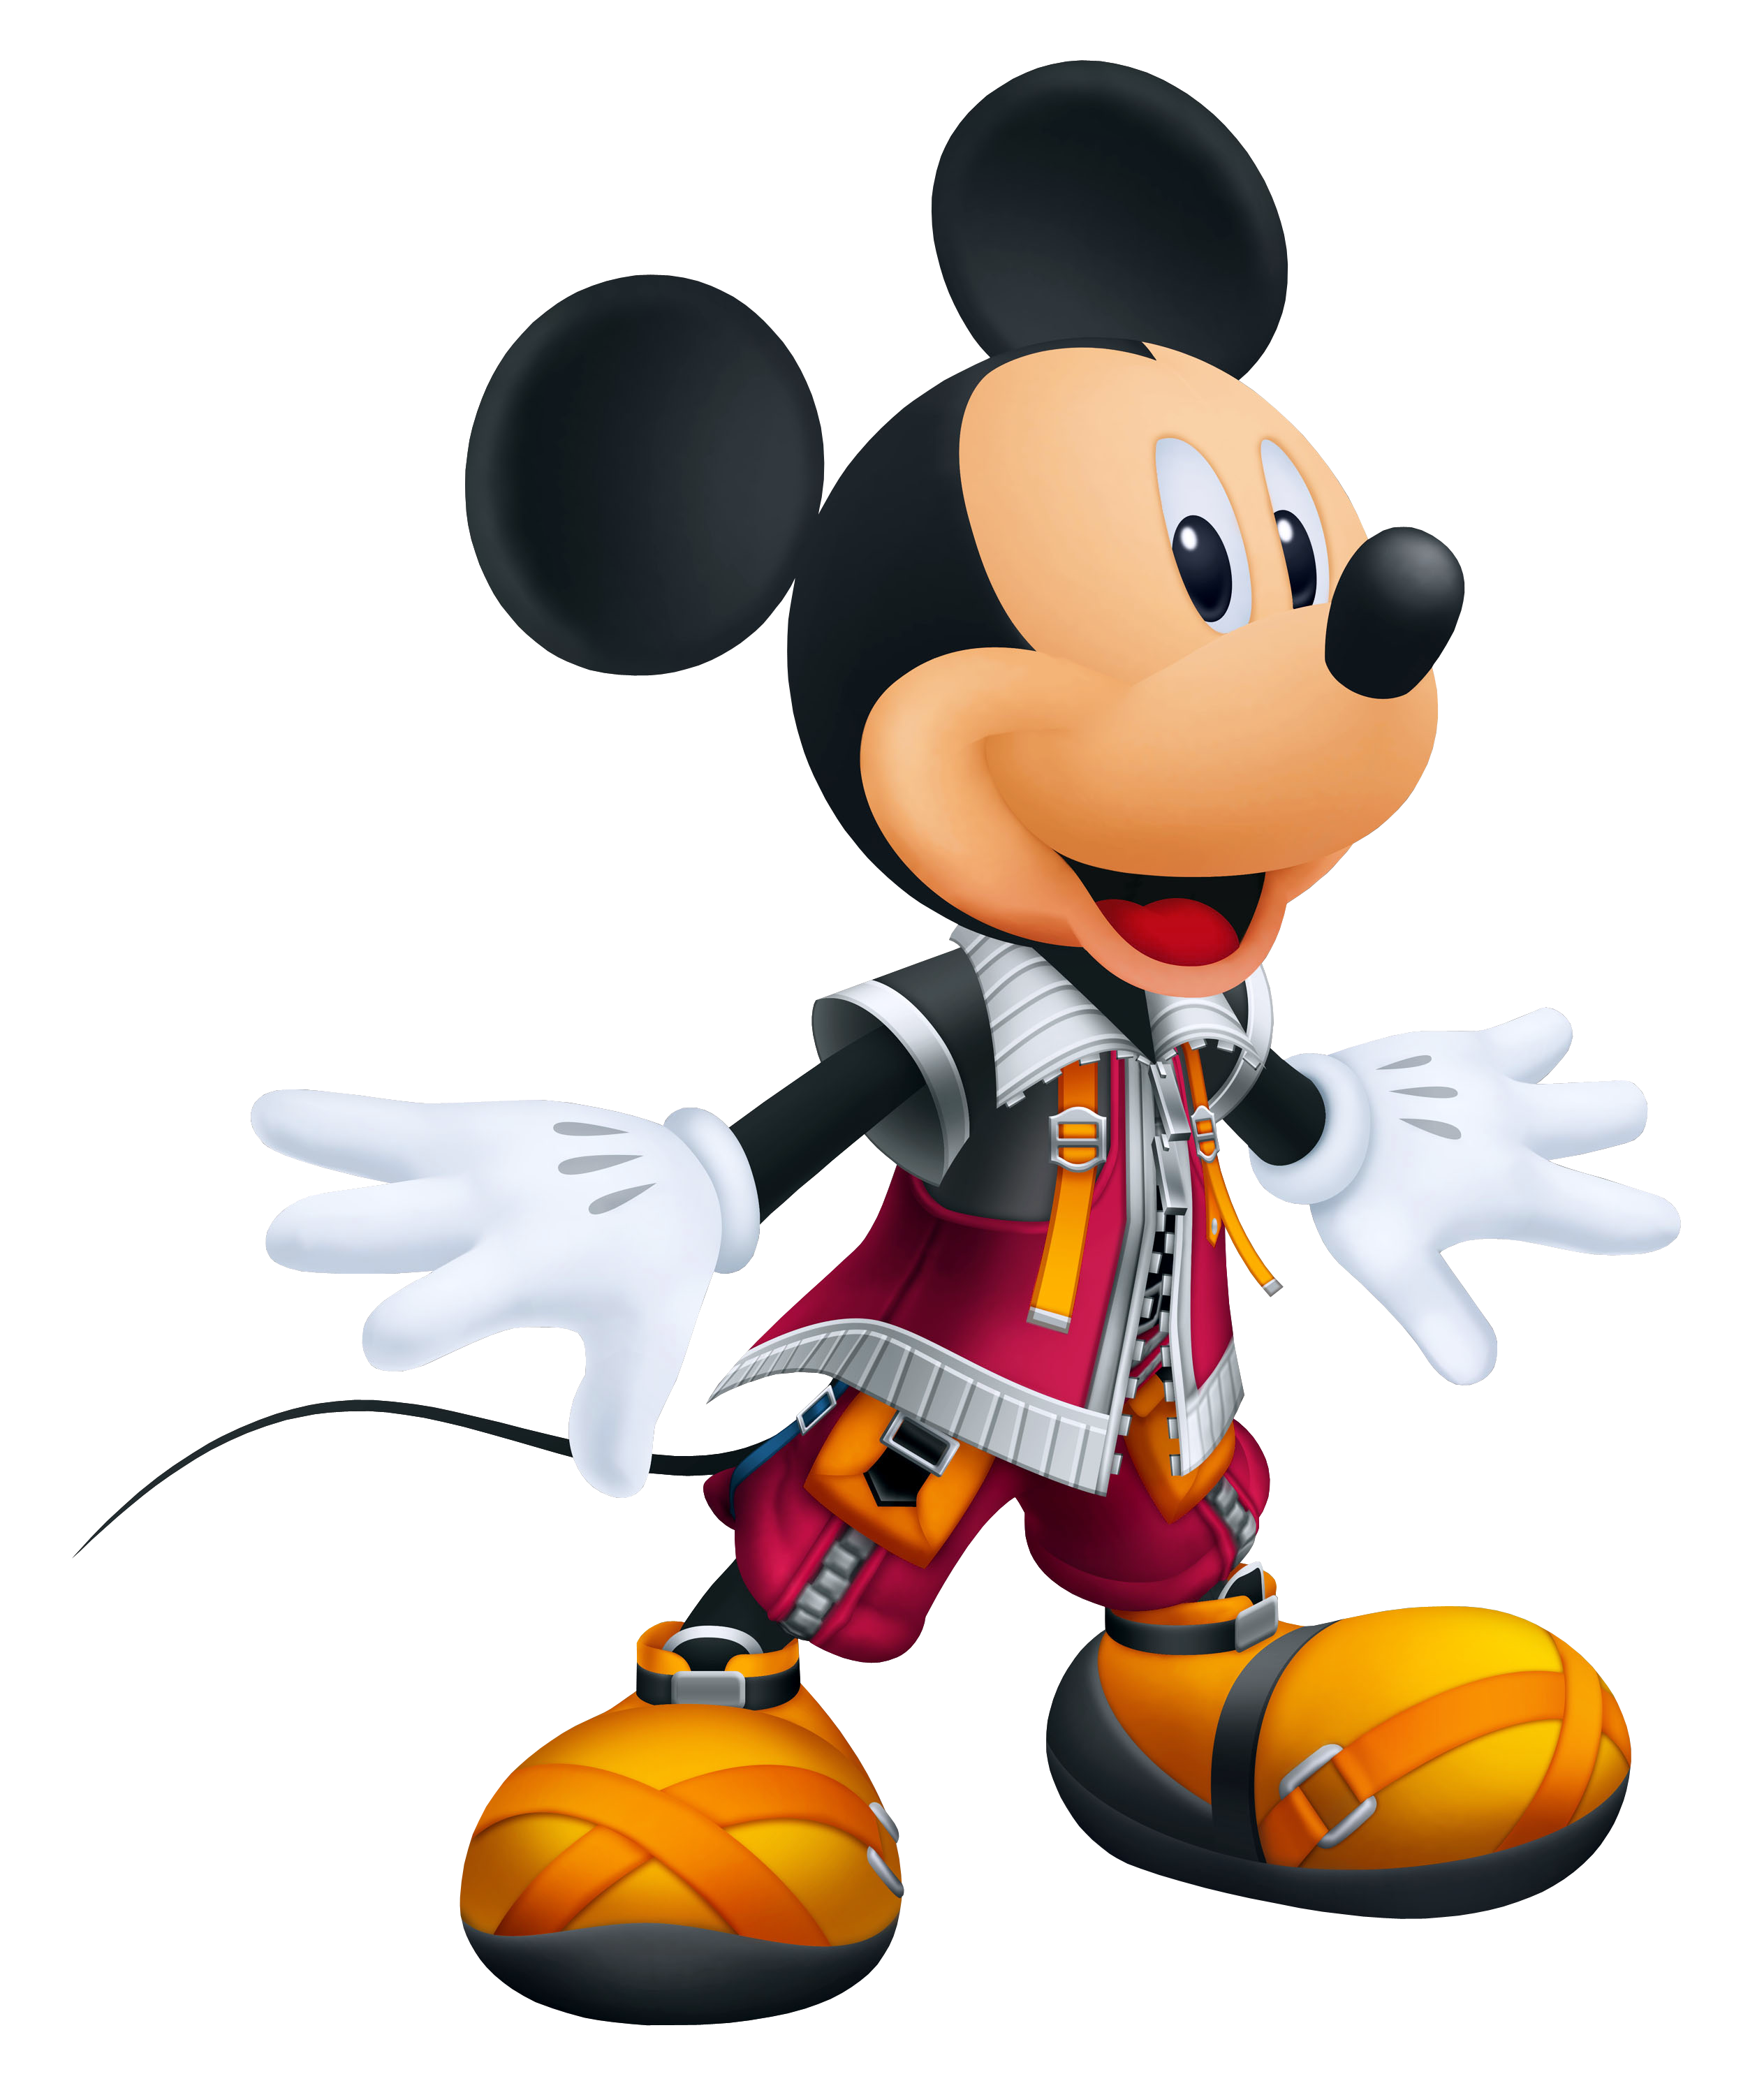 Key clipart mickey mouse. King png image purepng